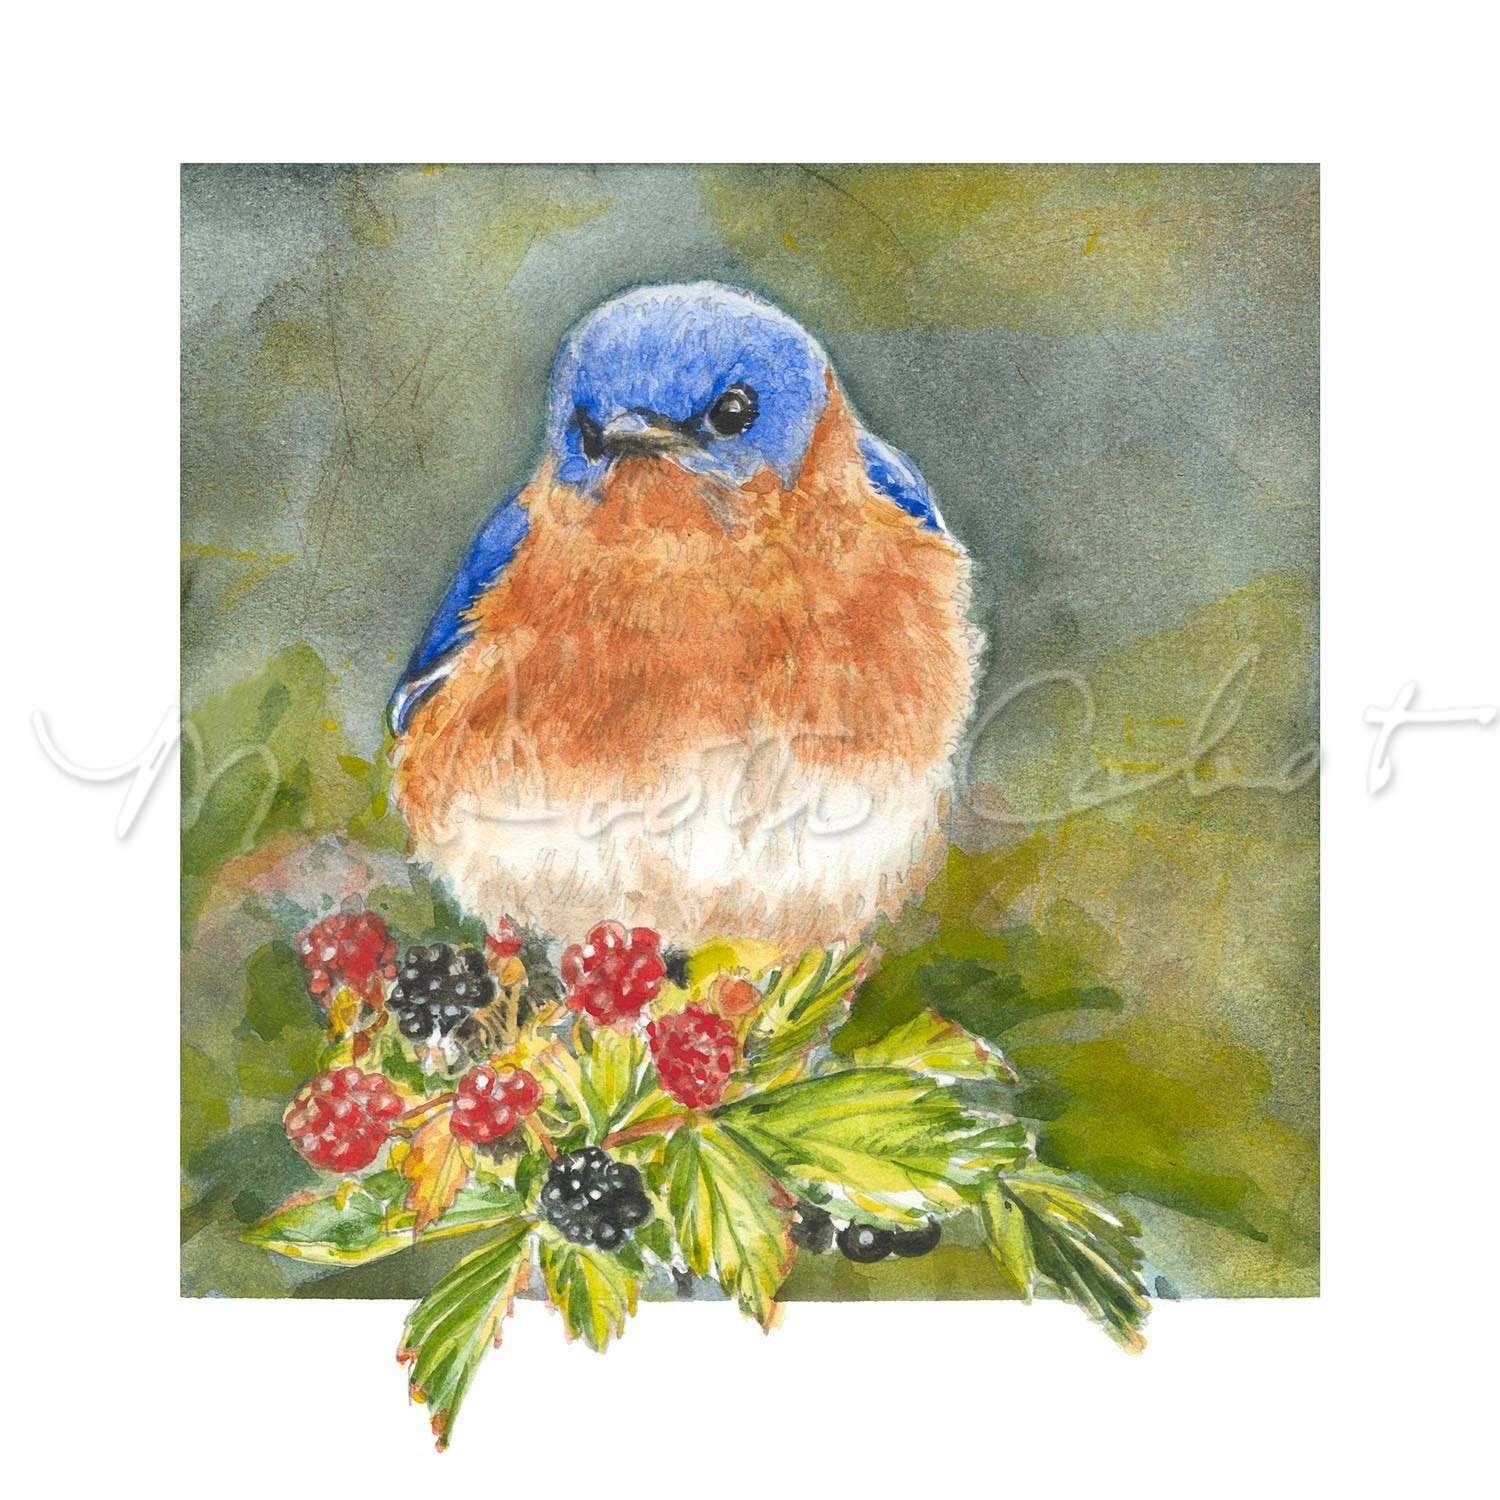 Bird - Bluebird Treat - Watercolor